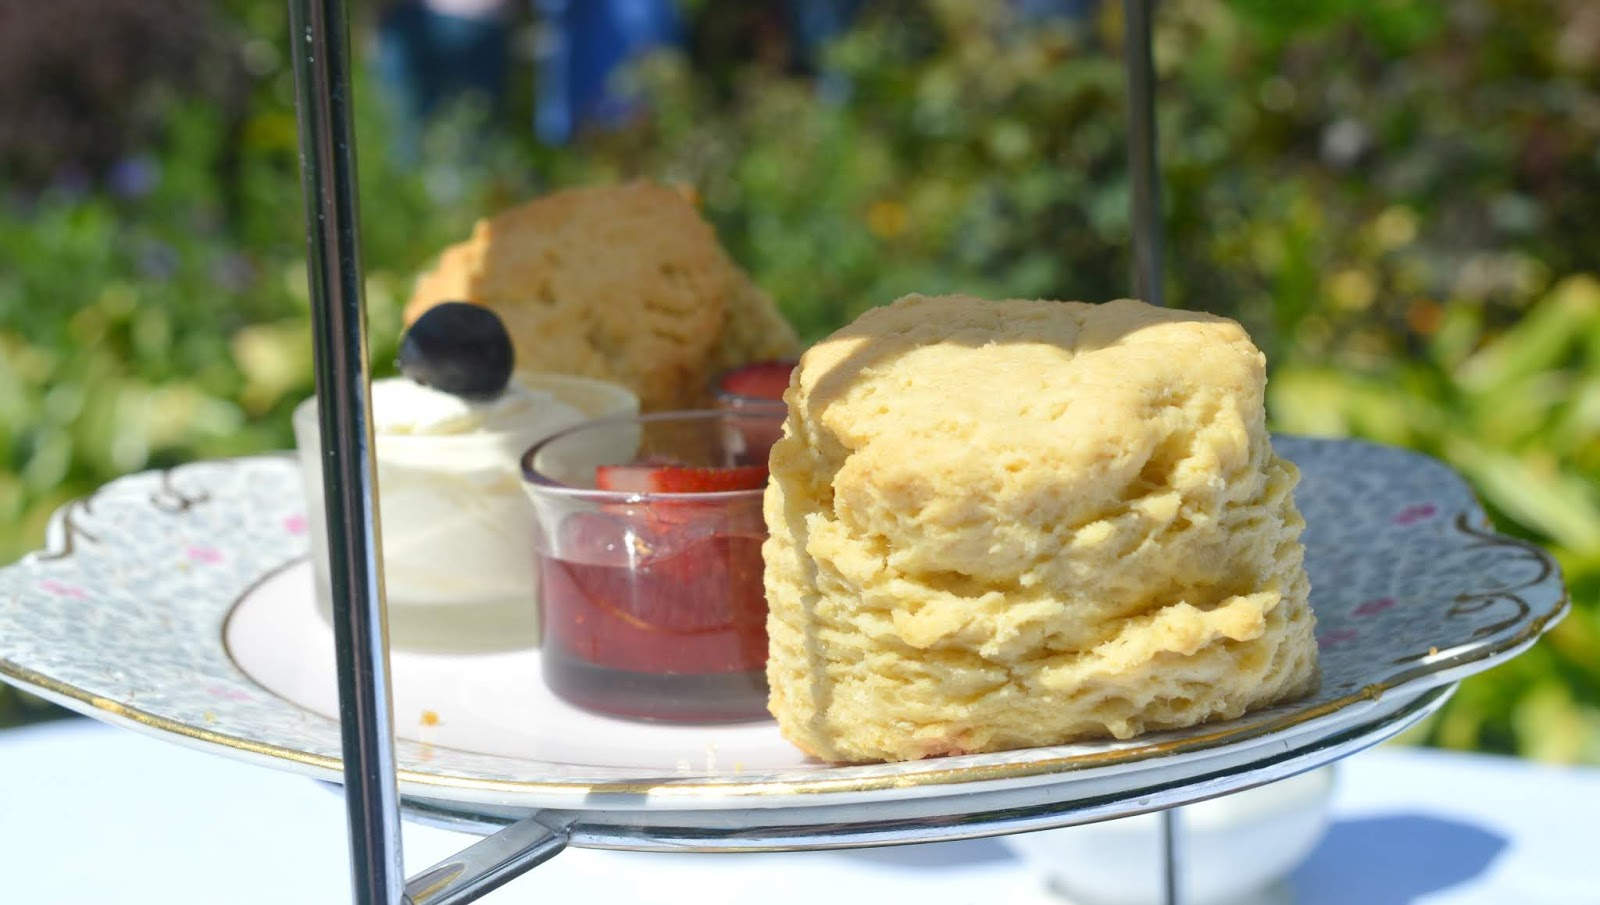 Crook Hall and Gardens, Durham - Scones